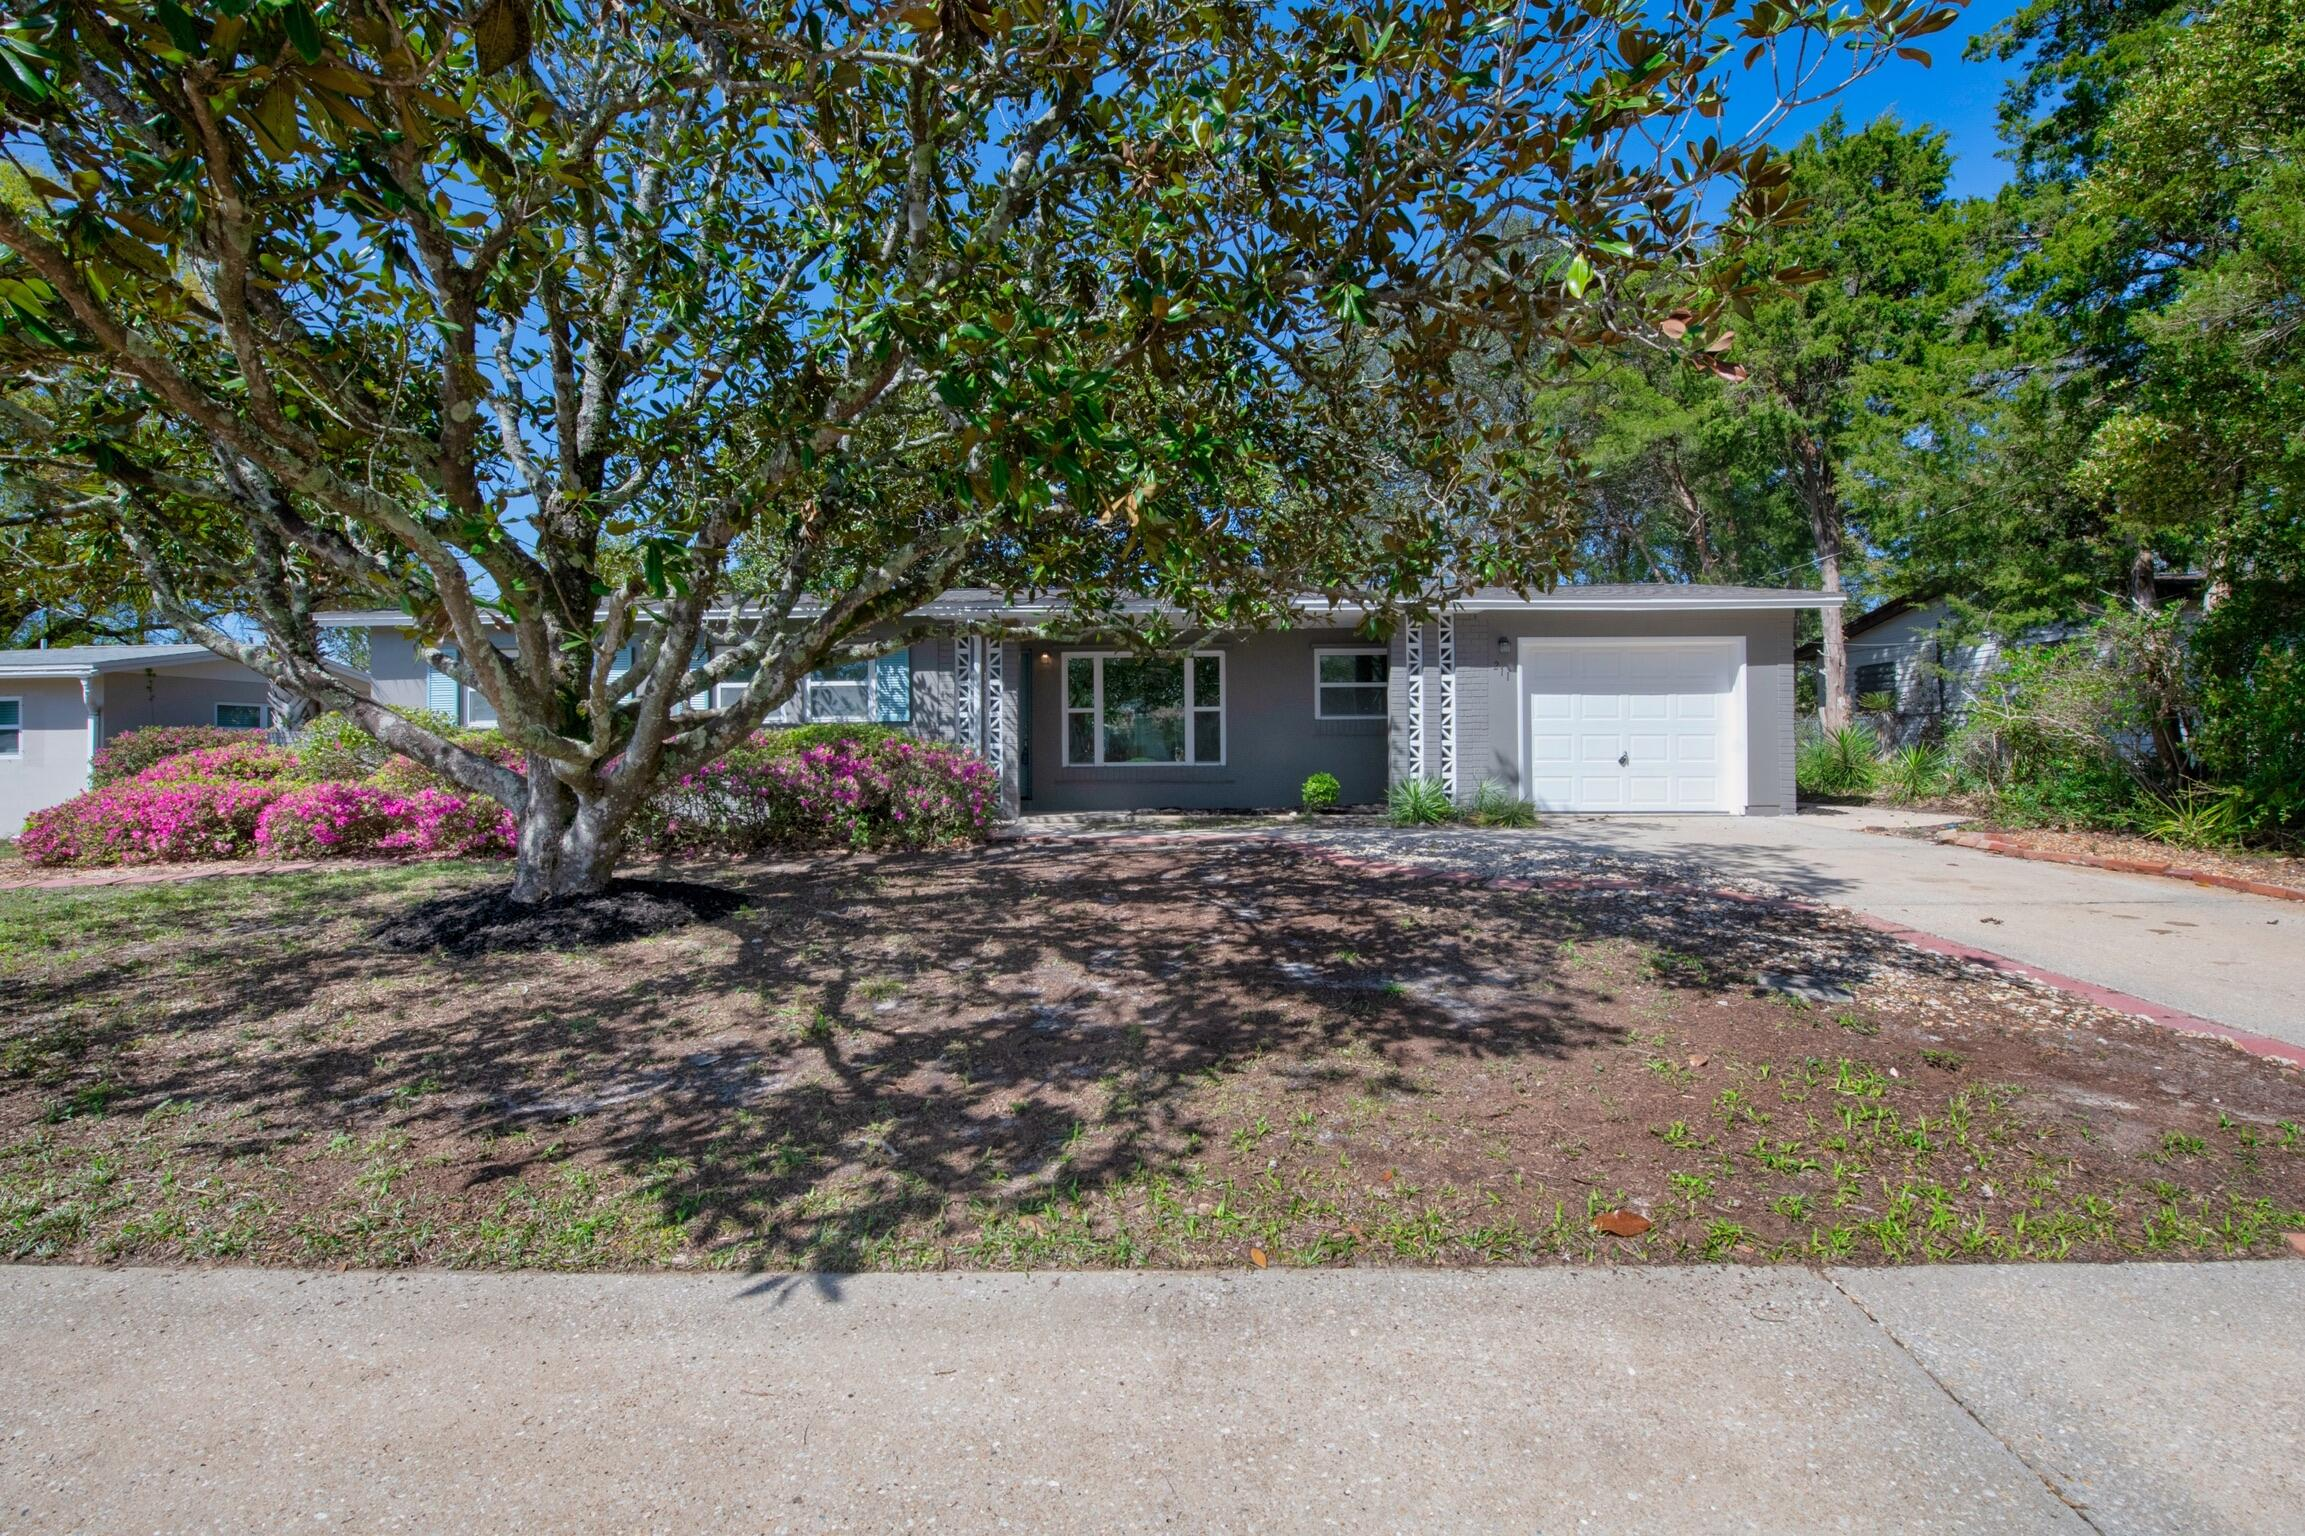 Photo of home for sale at 211 Gregory, Mary Esther FL